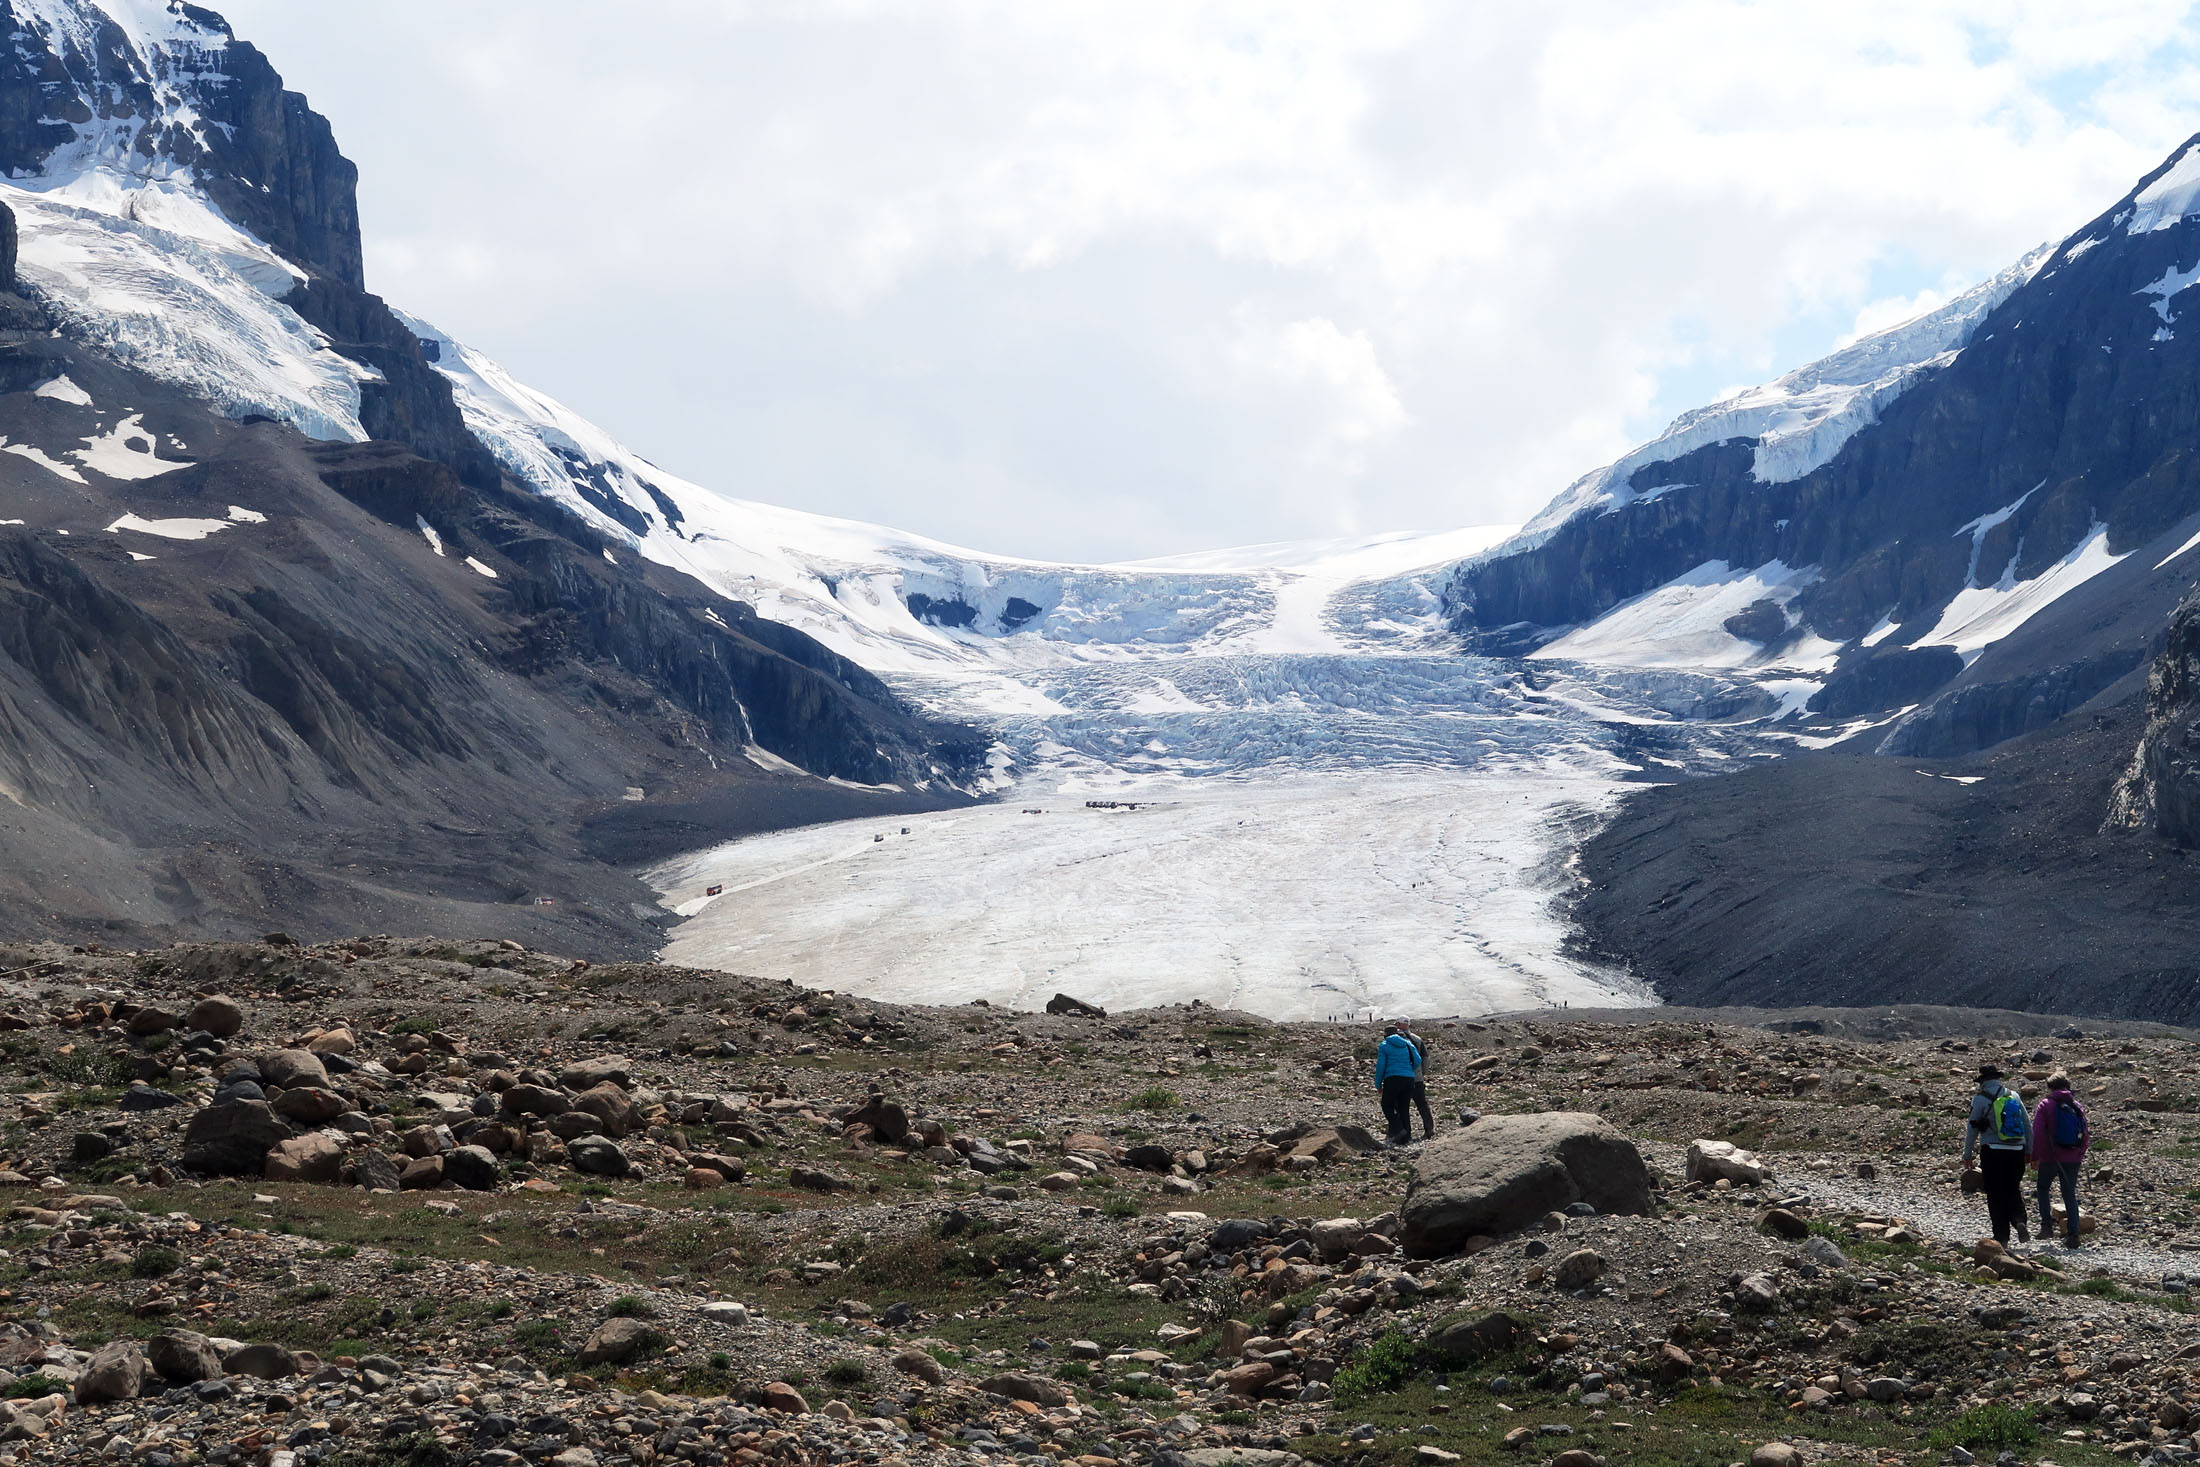 Some visitors choose to walk to the base of the Athabasca Glacier from a parking area off the Icefields Parkway. (Craig Davis/craigslegztravels.com)